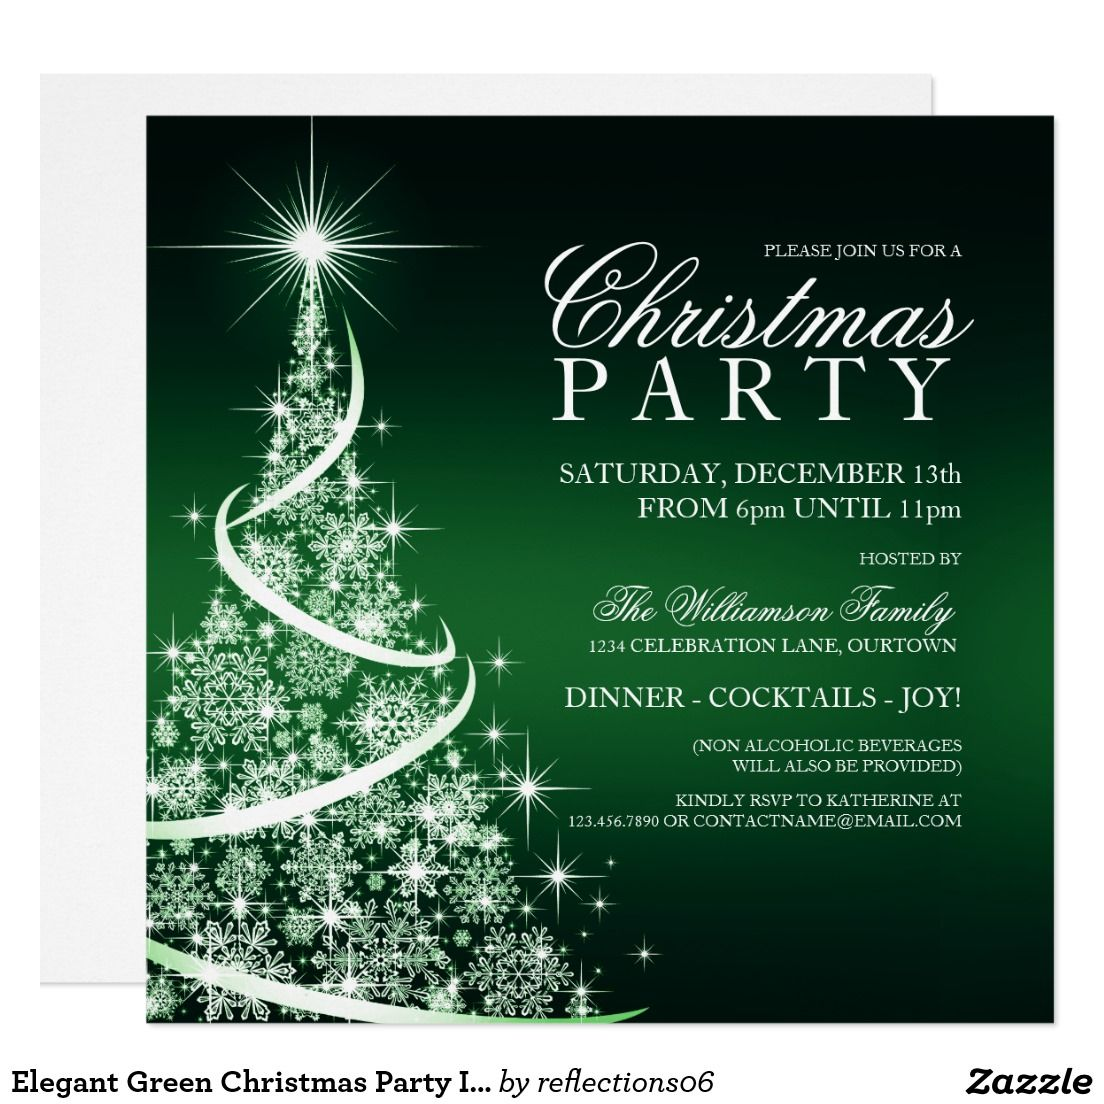 vintage christmas party red deer rustic holiday card christmas elegant green christmas party invitation